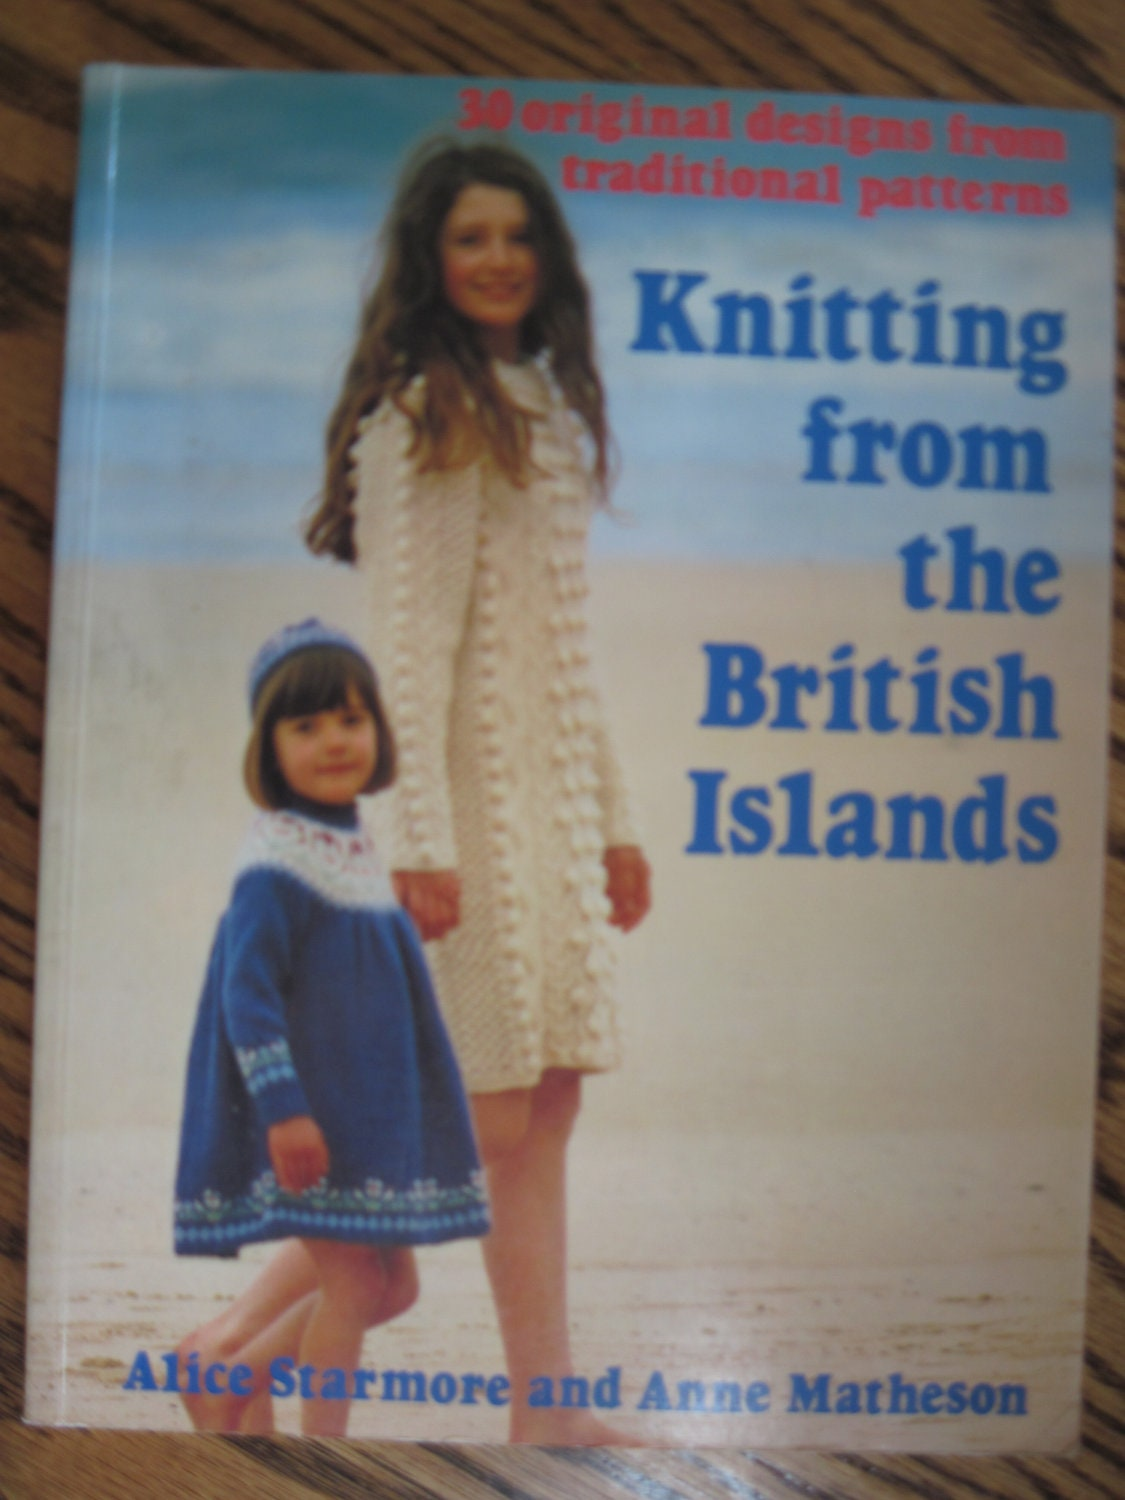 Knitting from the British Islands: 30 Original Designs from Traditional Patterns Alice Starmore and Anne Matheson